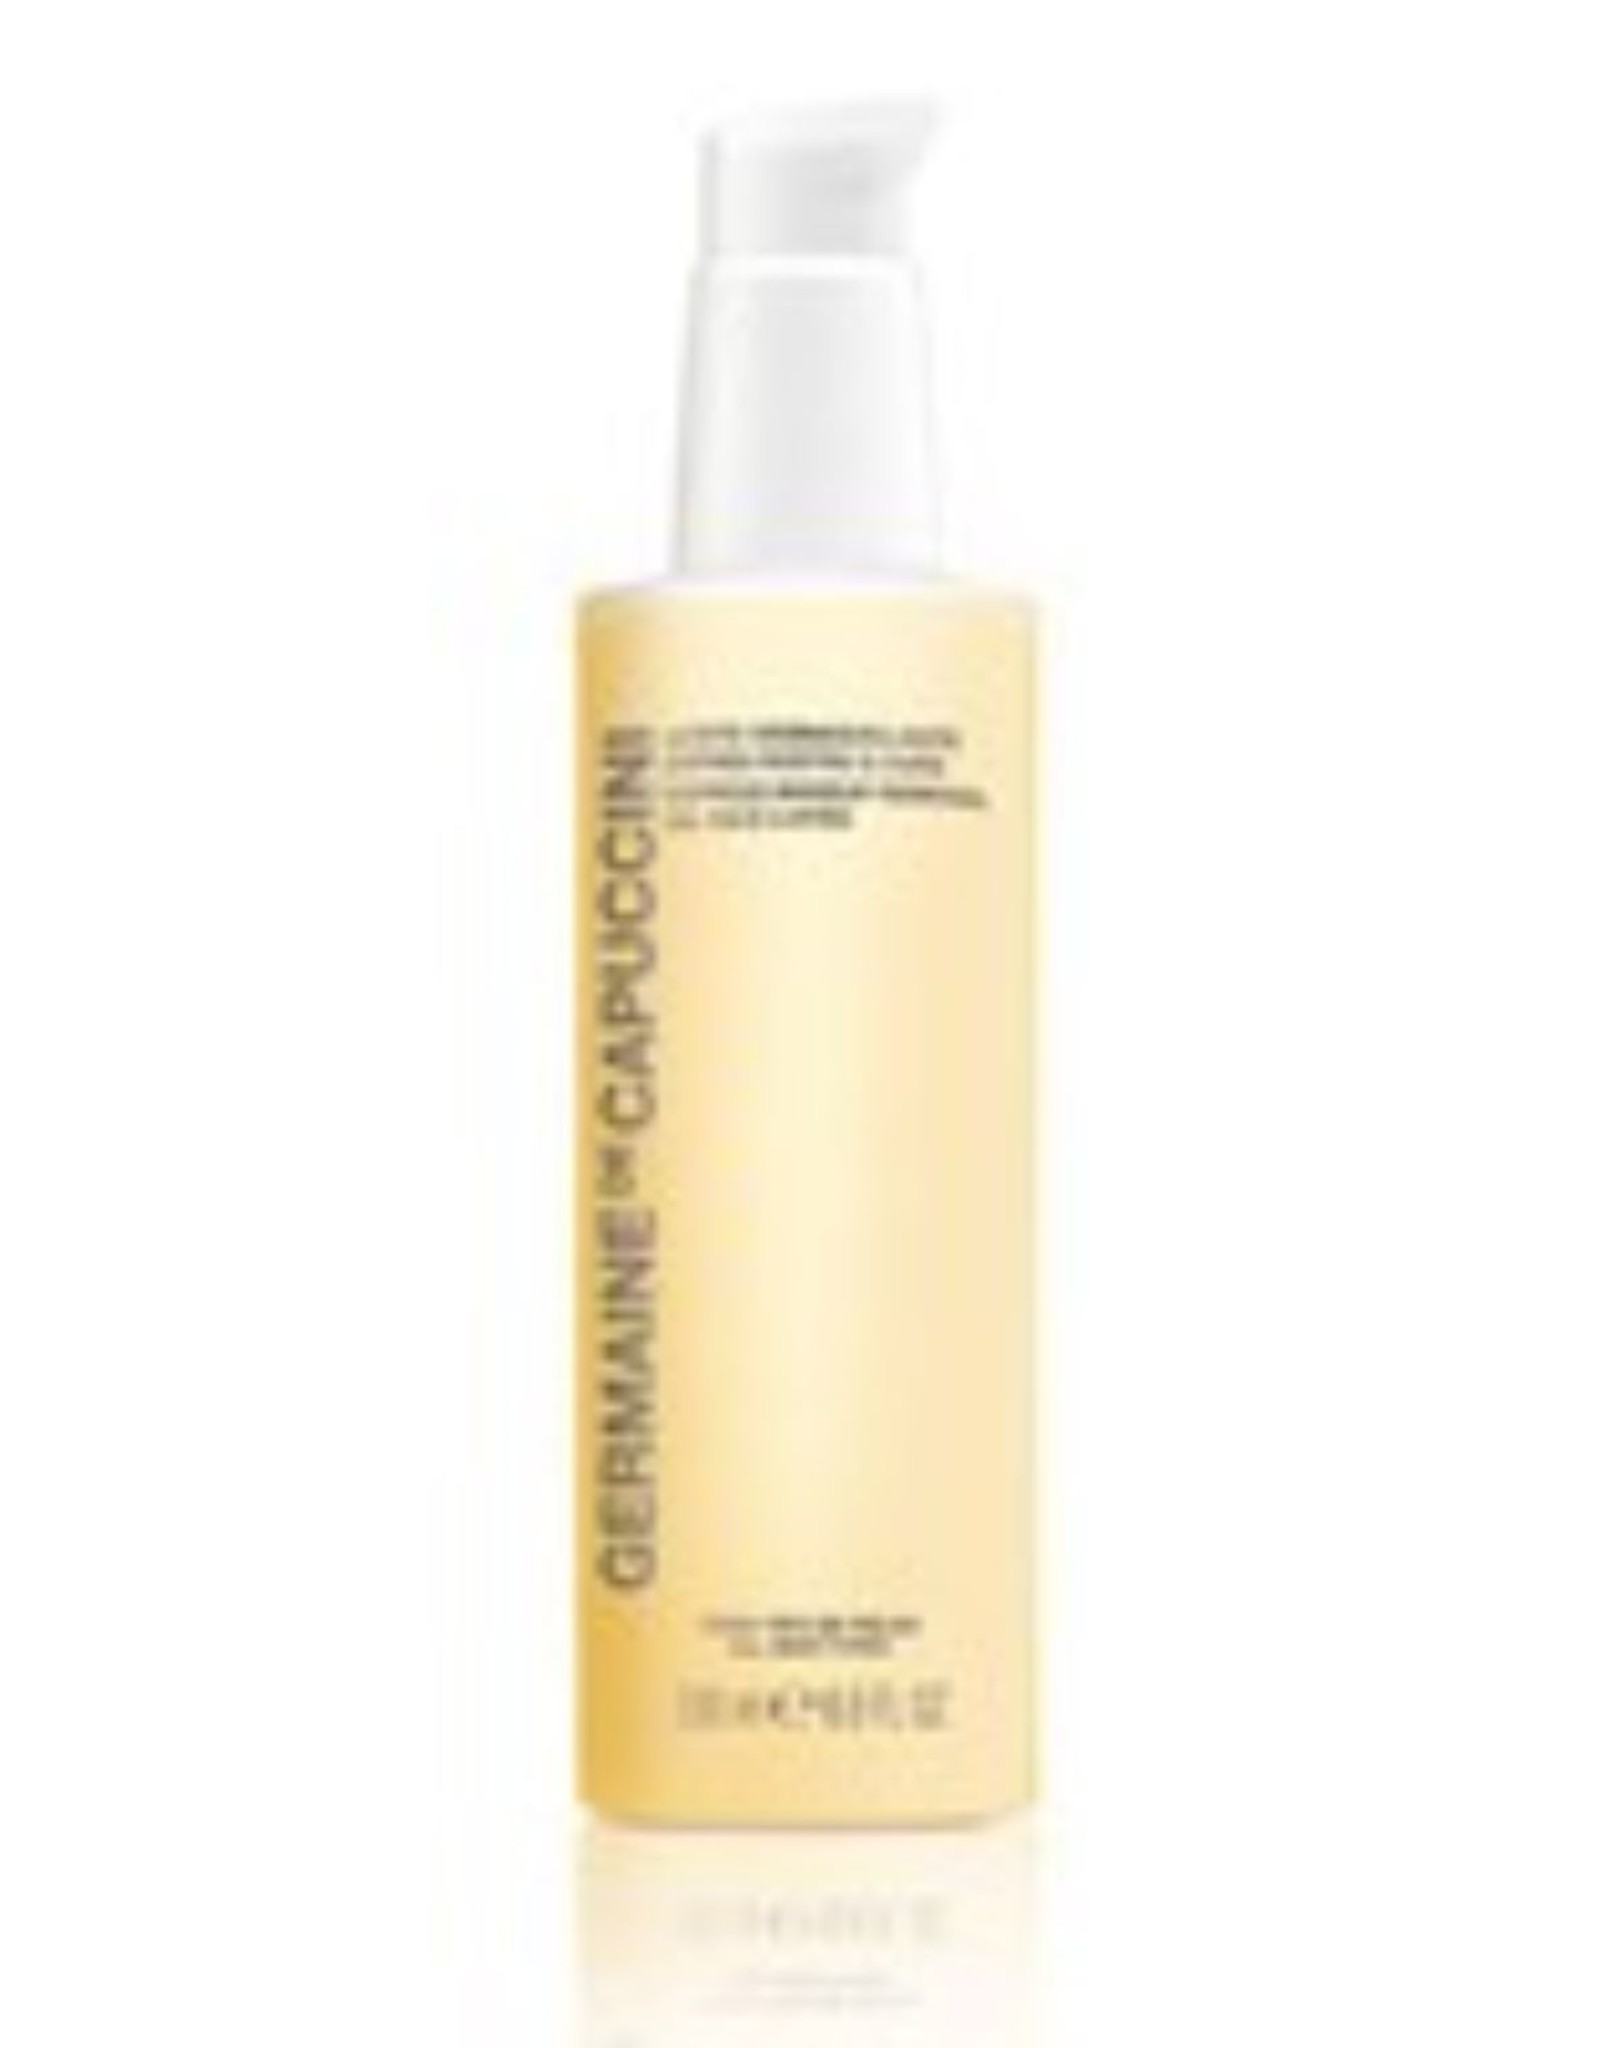 Germaine de Cappucini Express Make-Up Removal Oil - Face & Eyes